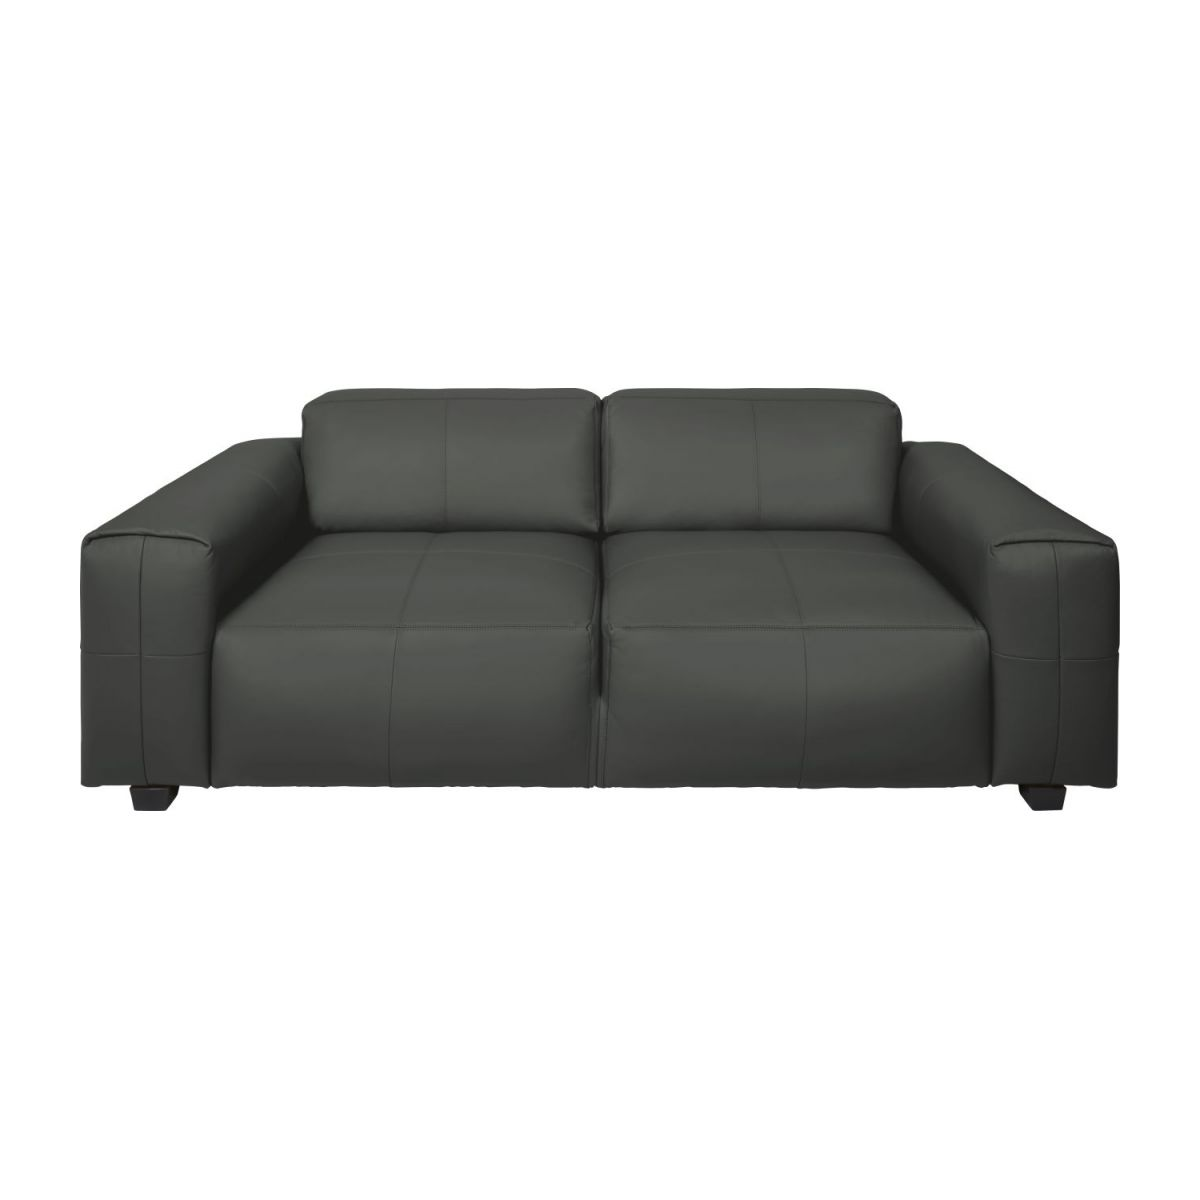 4 seater sofa in Savoy semi-aniline leather, grey n°2